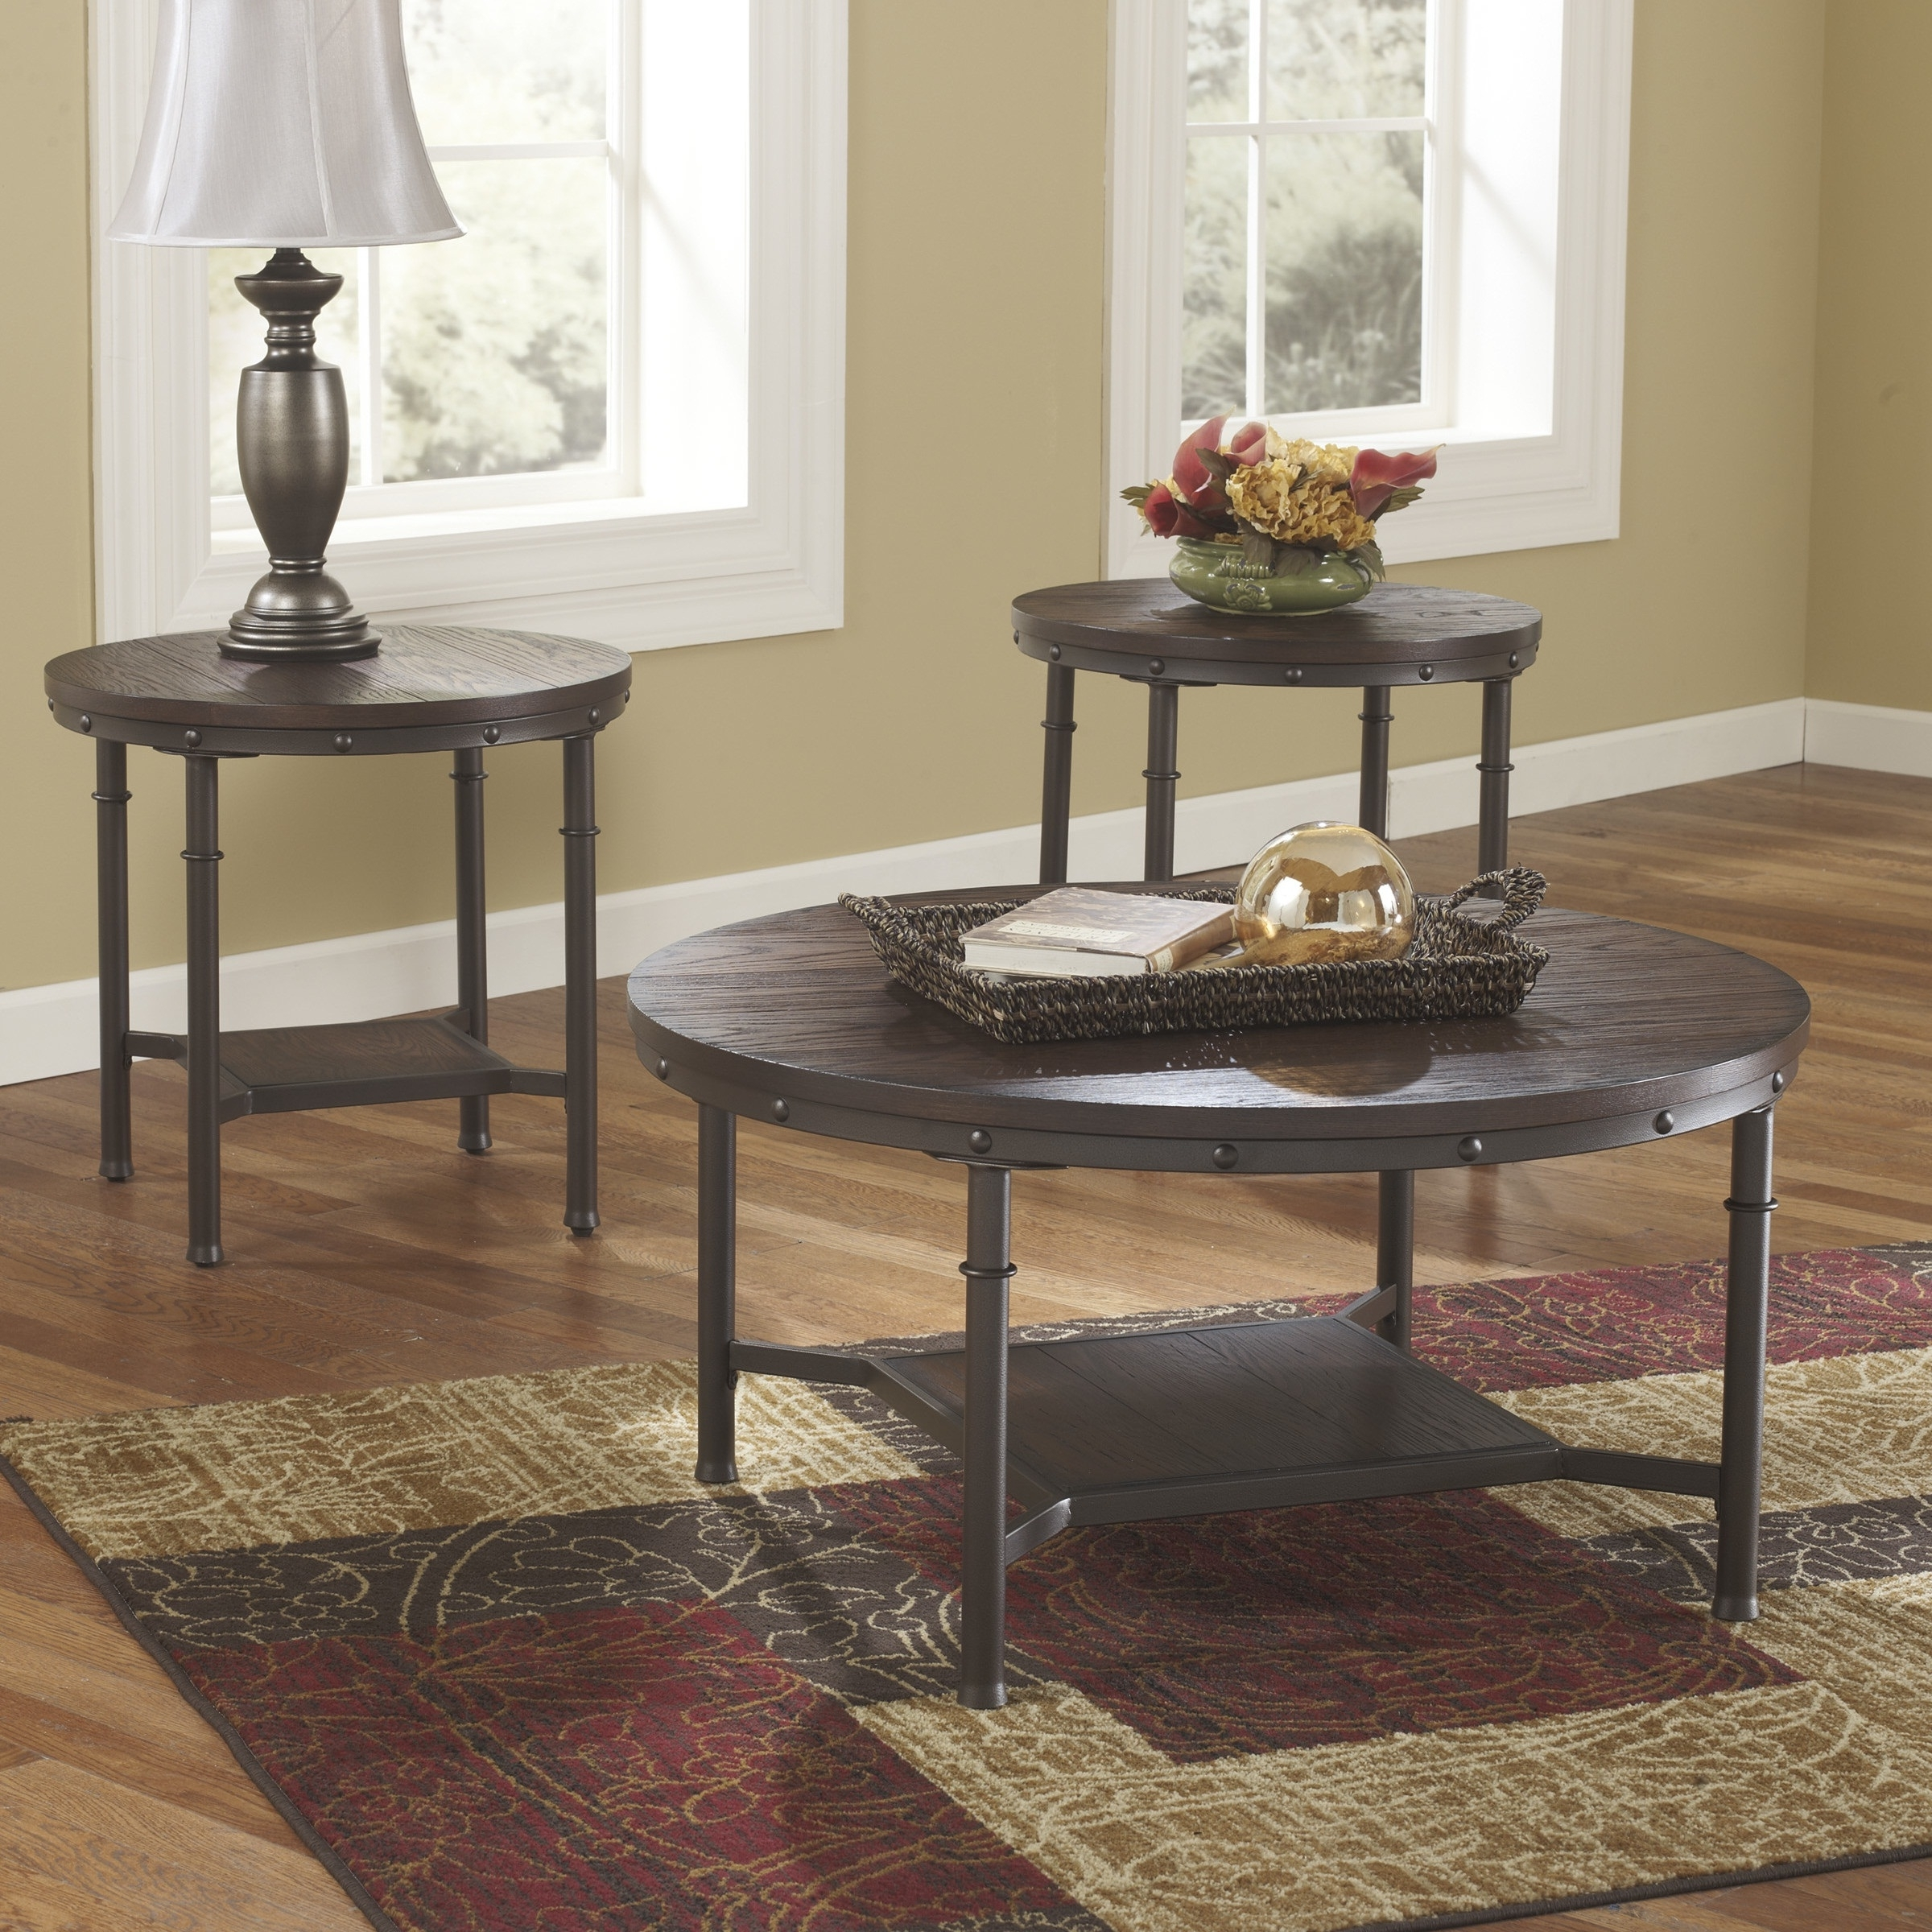 Widely Used Large Slab Marble Coffee Tables With Antiqued Silver Base Regarding Cheap Round Coffee Table Sets Susan 3 Piece Coffee Table Set Round (View 20 of 20)